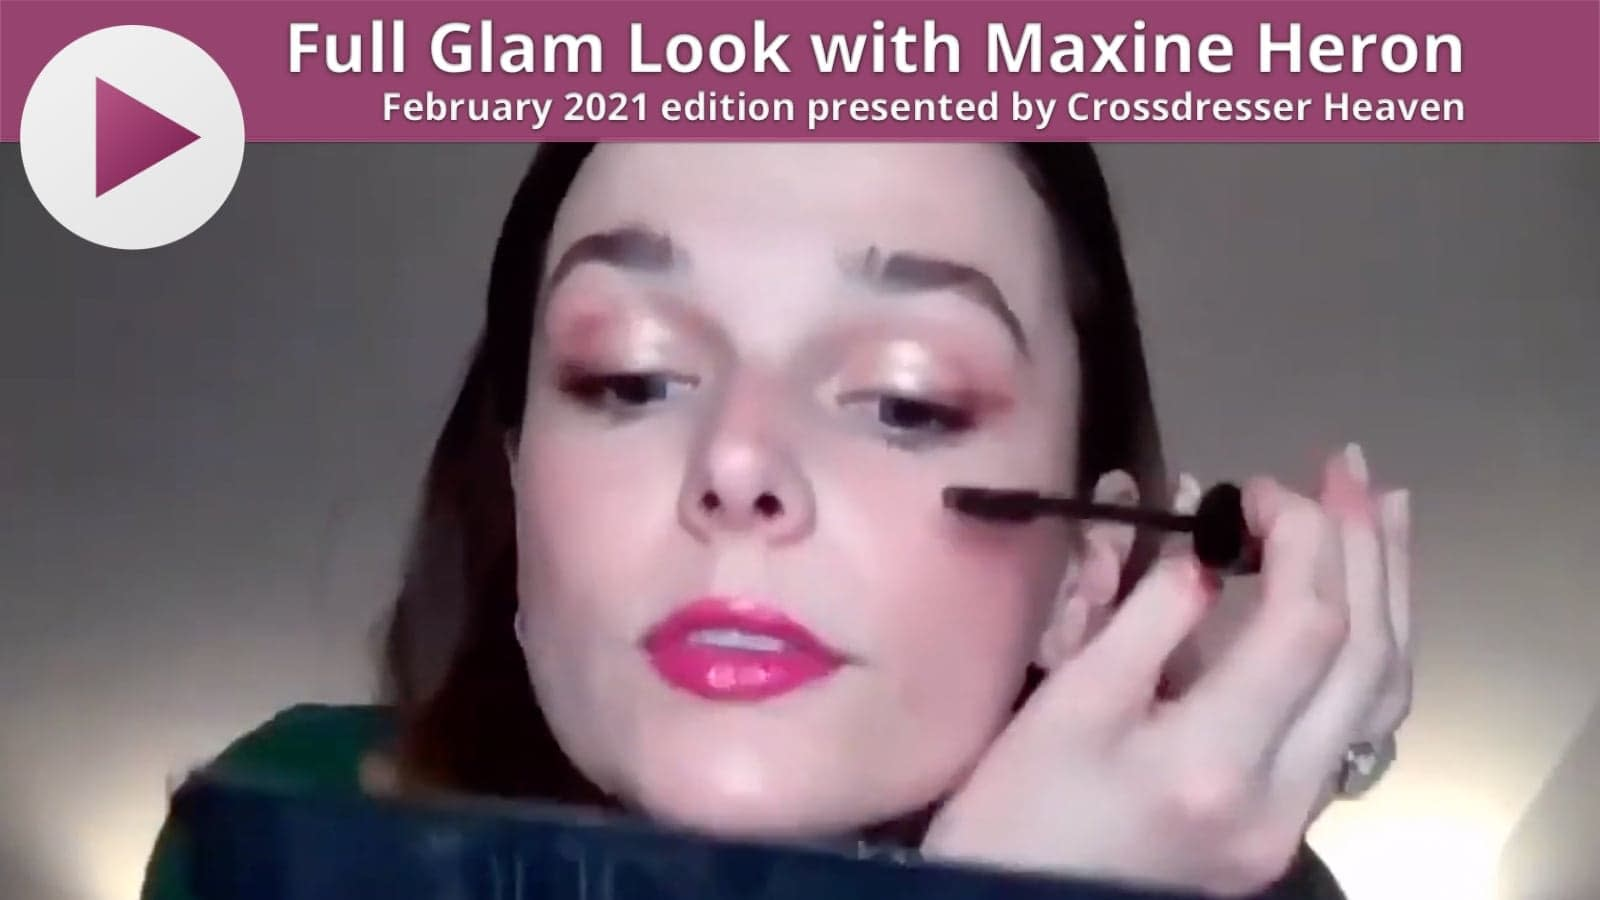 Full Glam Look with Maxine Heron